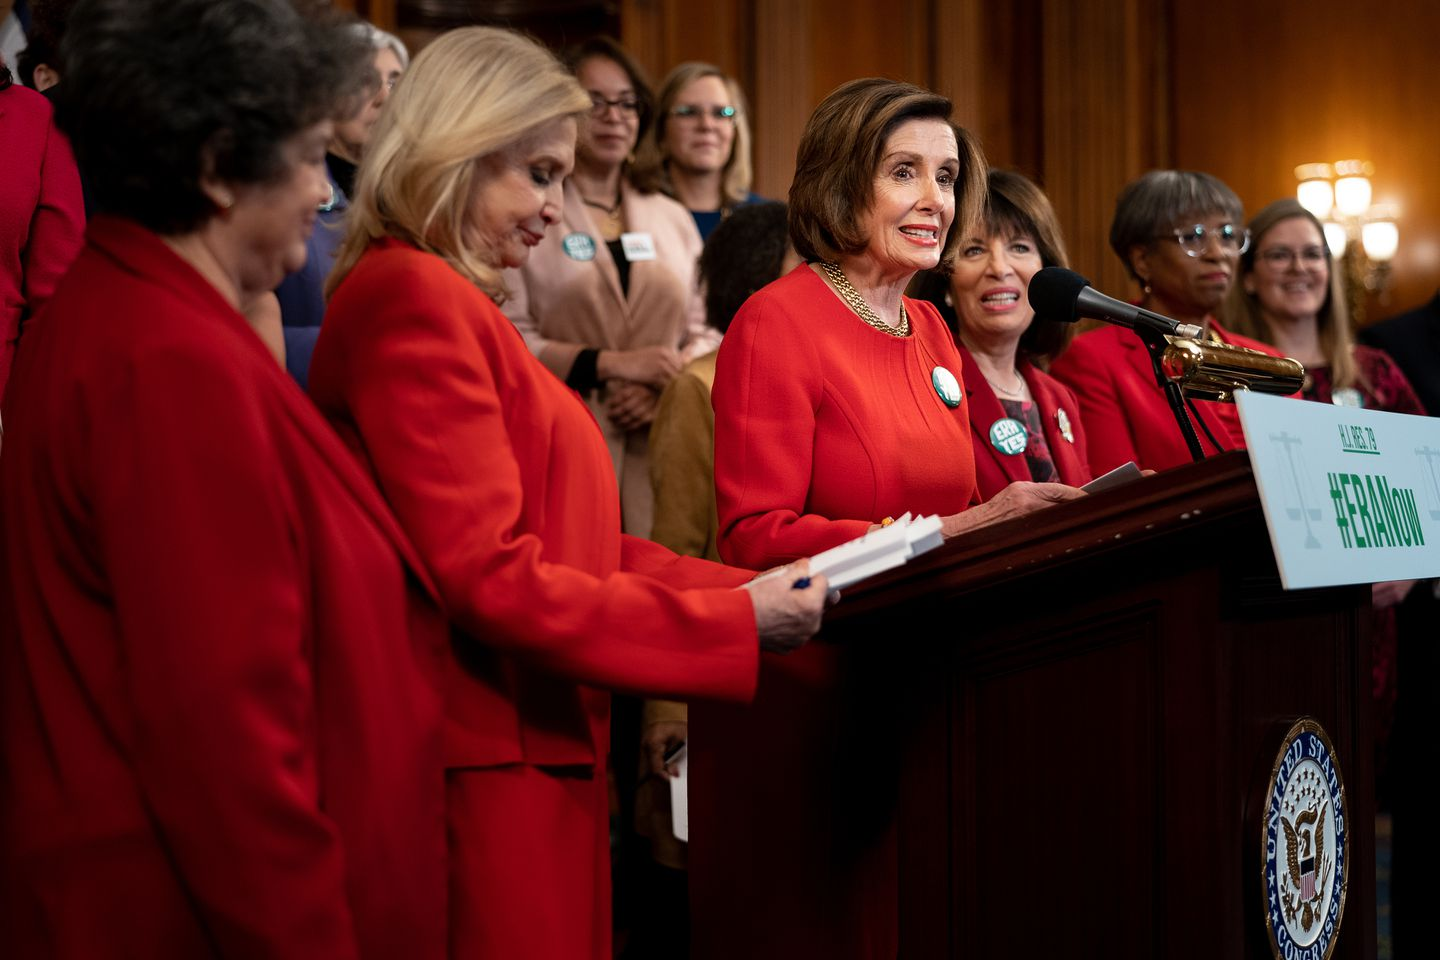 House Speaker Nancy Pelosi and other members of Congress spoke to the media after the House's vote on Thursday.